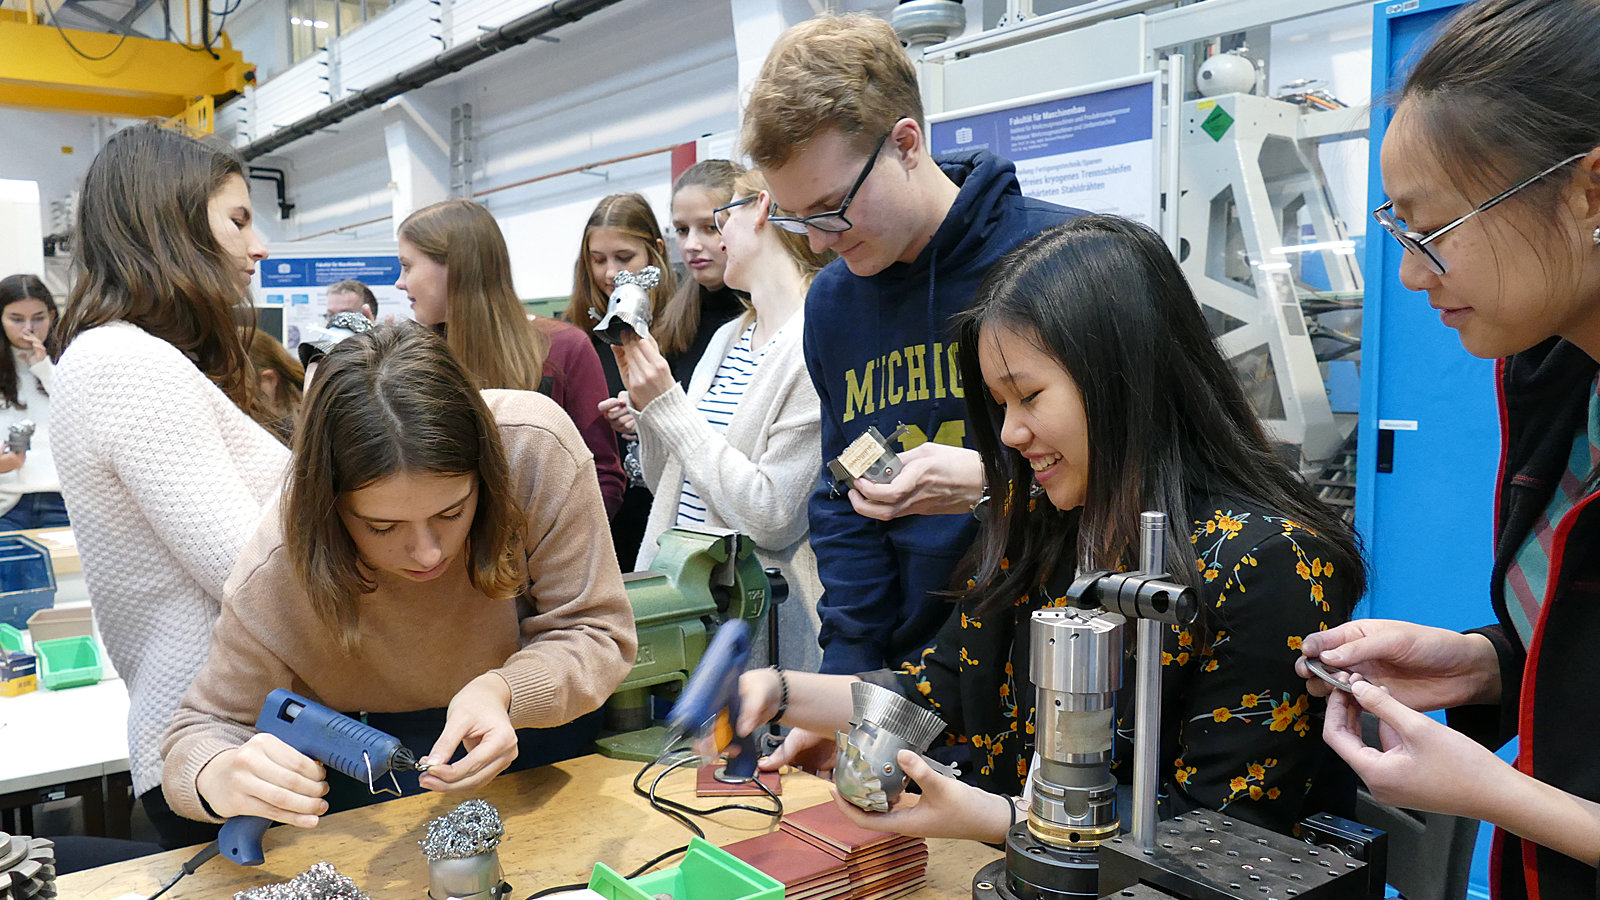 Young people are working on an metallic object.